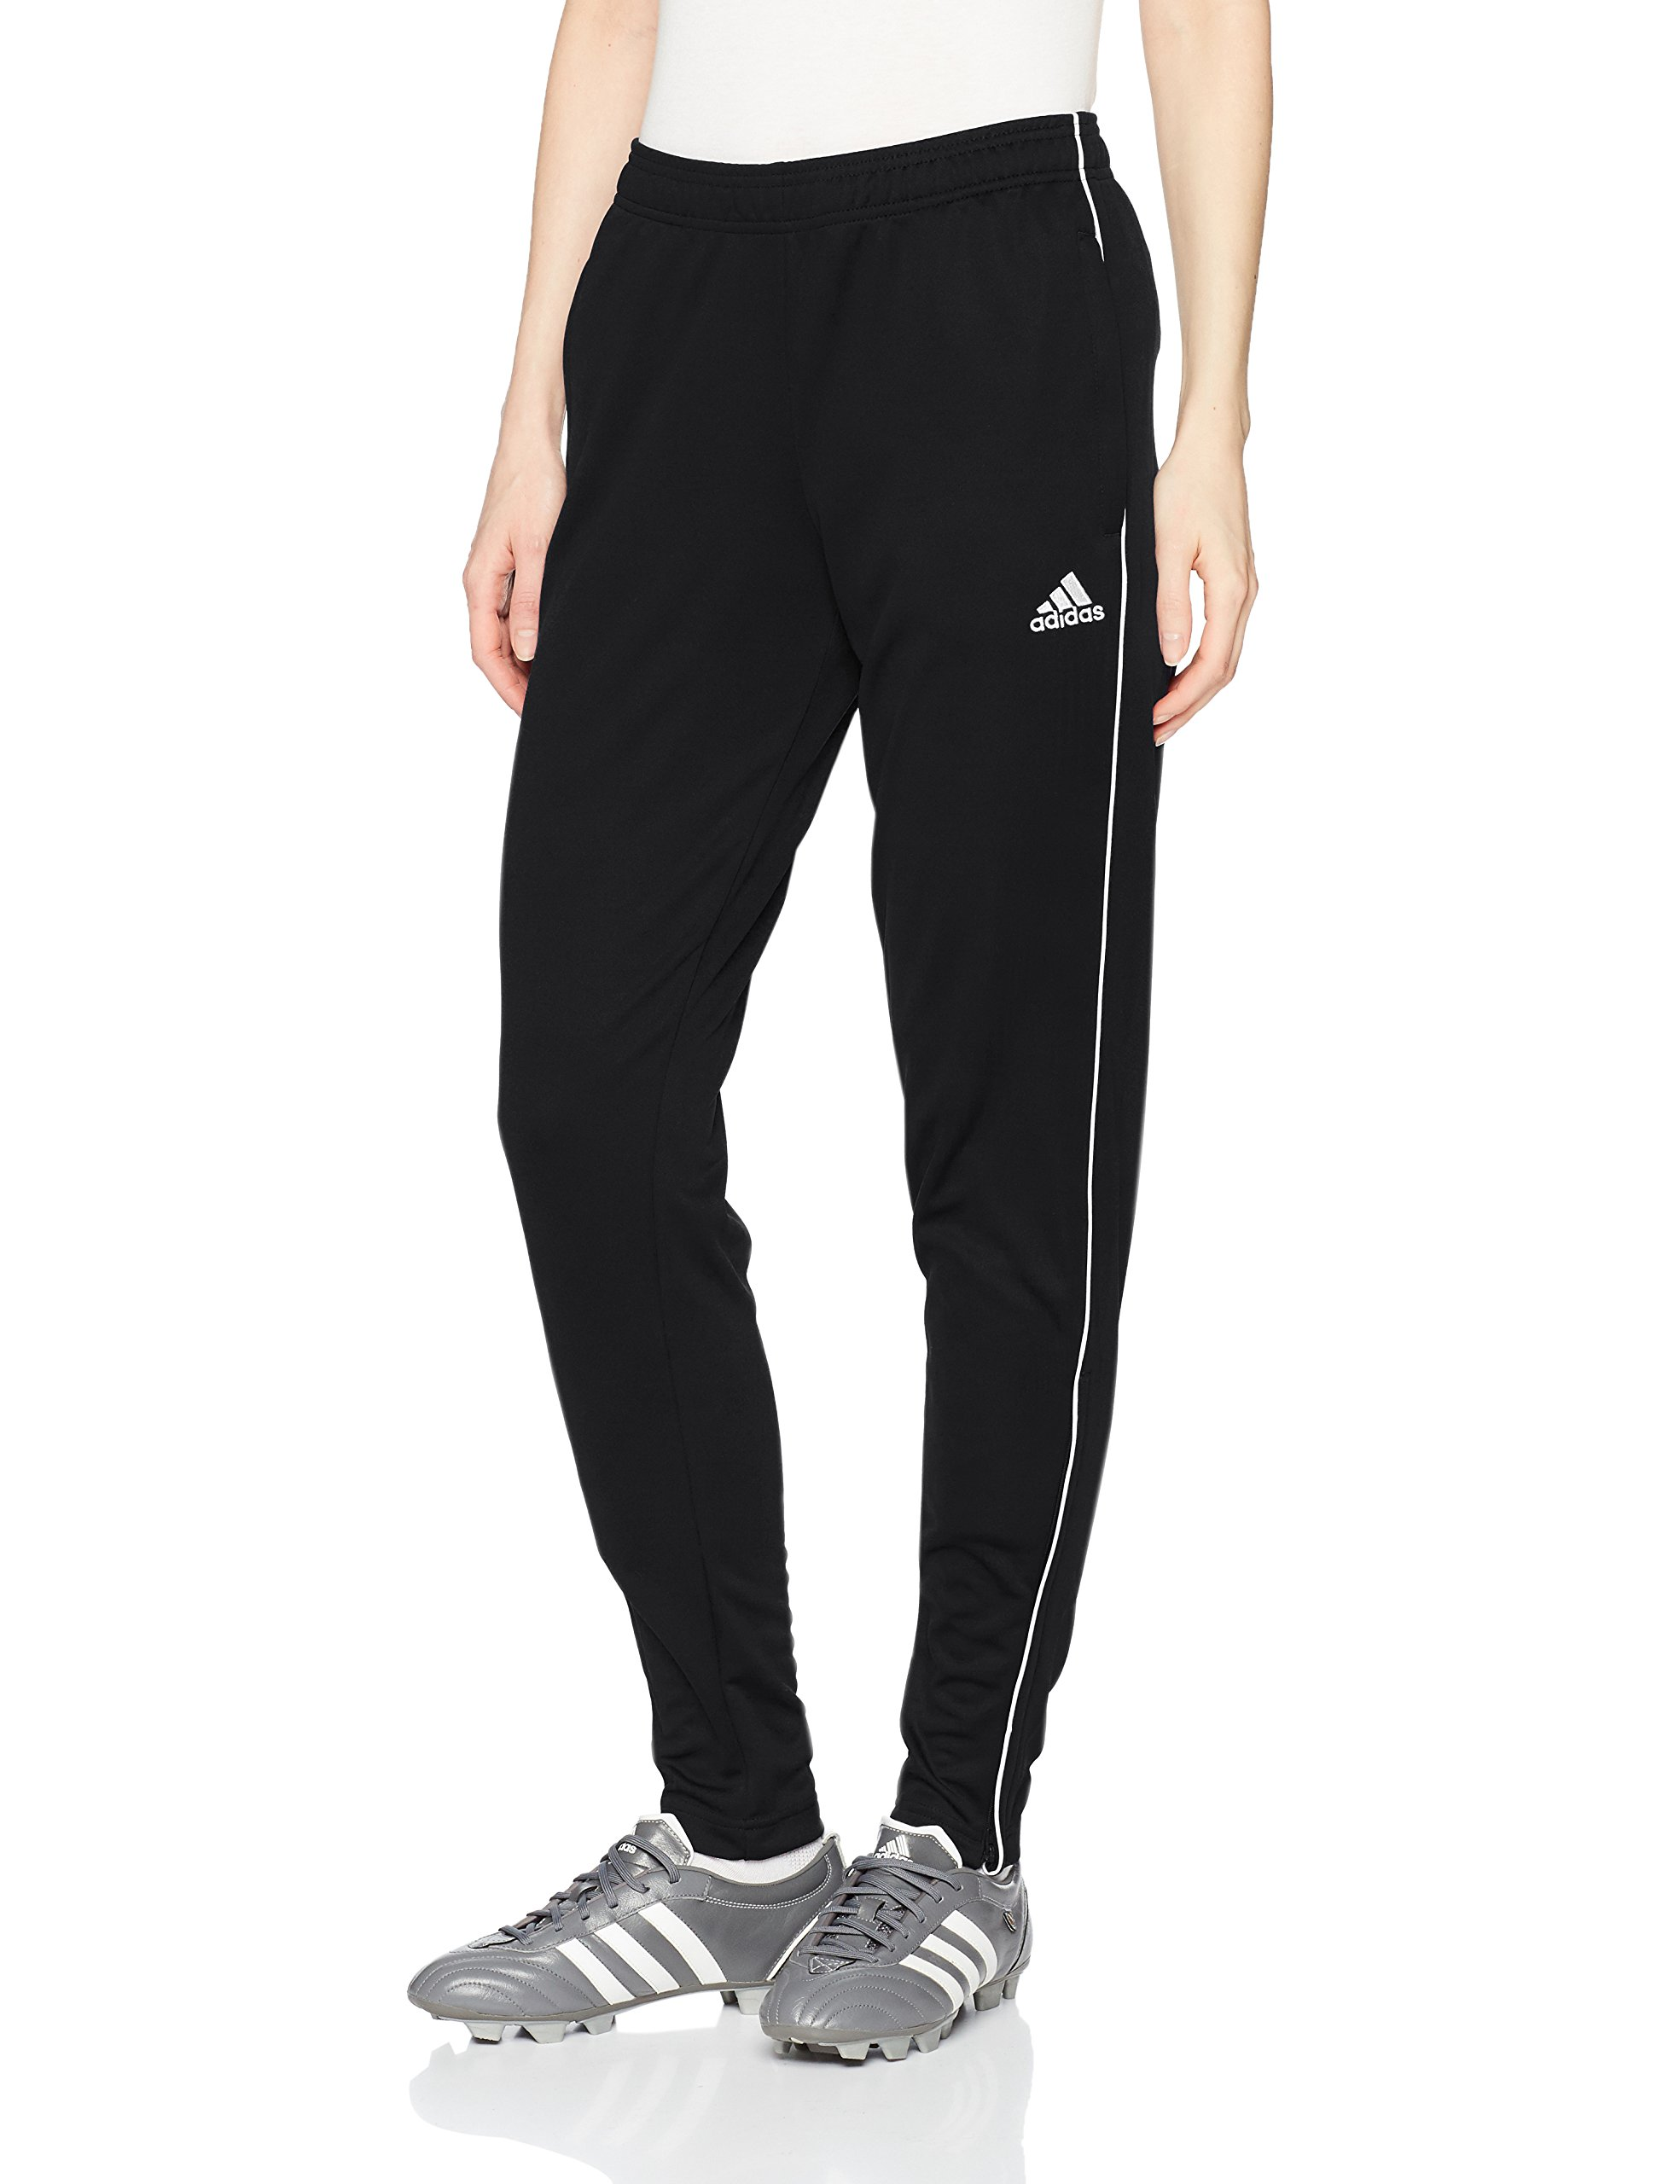 adidas Women's Core18 Training Pants, Black/White, Large